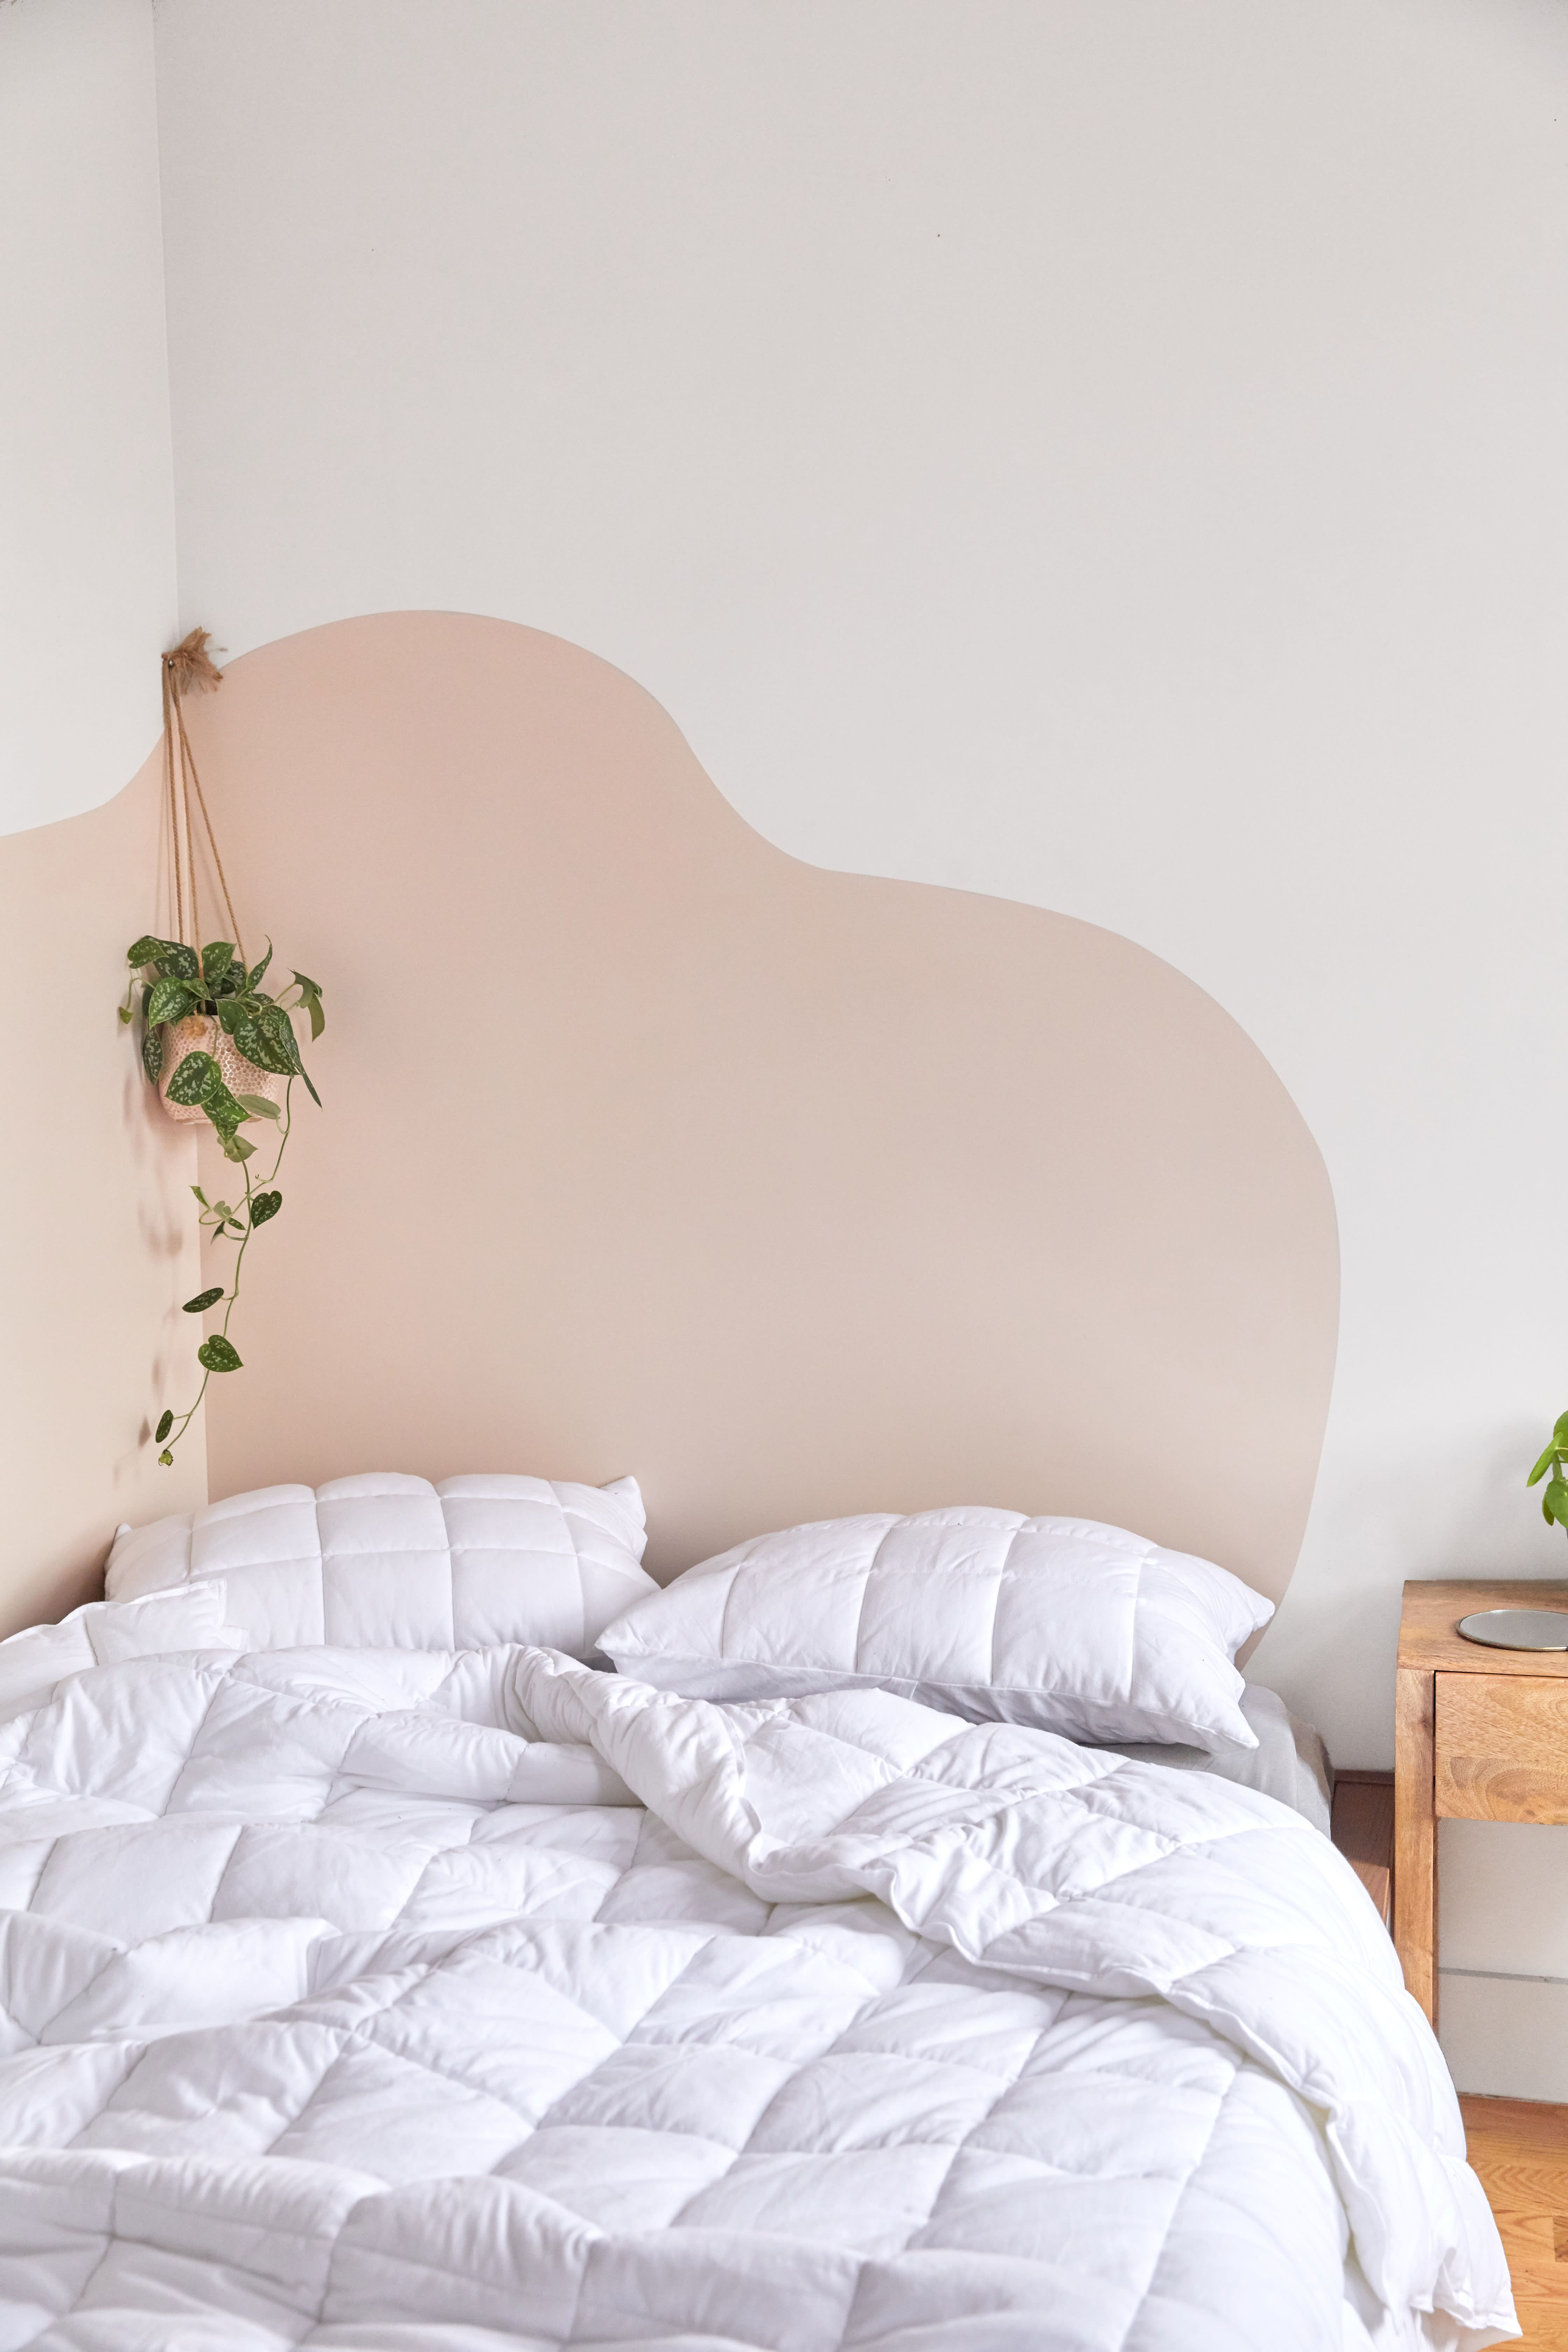 Urban Outfitters Home Now Sells Backdrop Paint